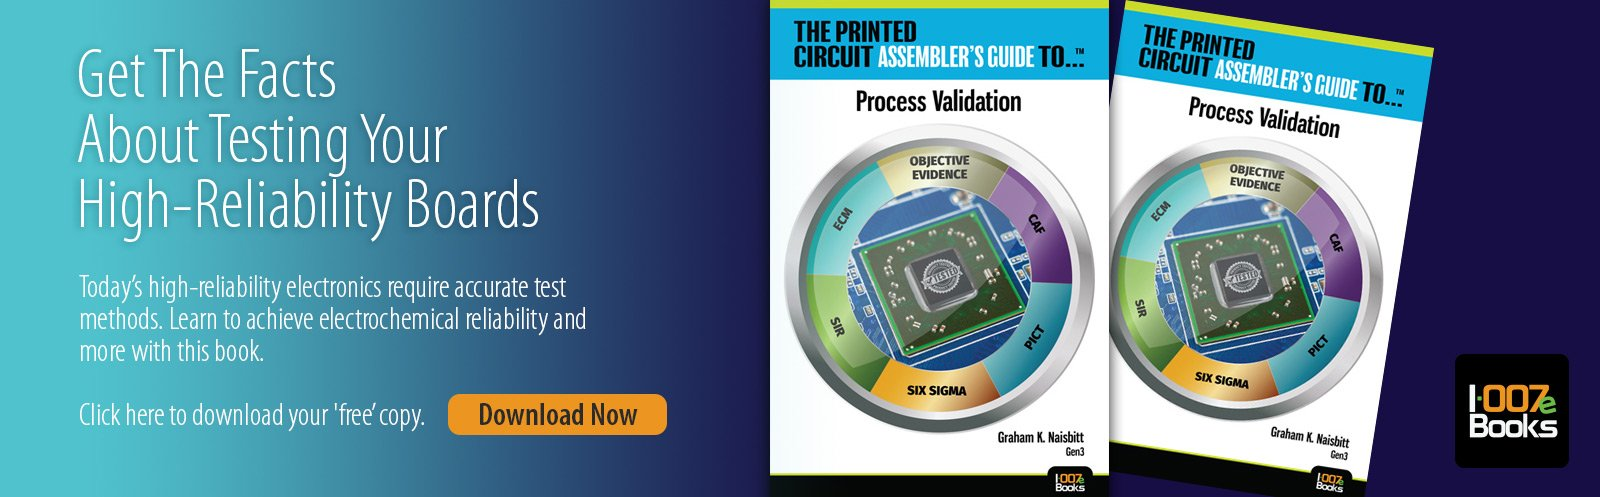 The Printed Circuit Assembler's Guide to Process Validation